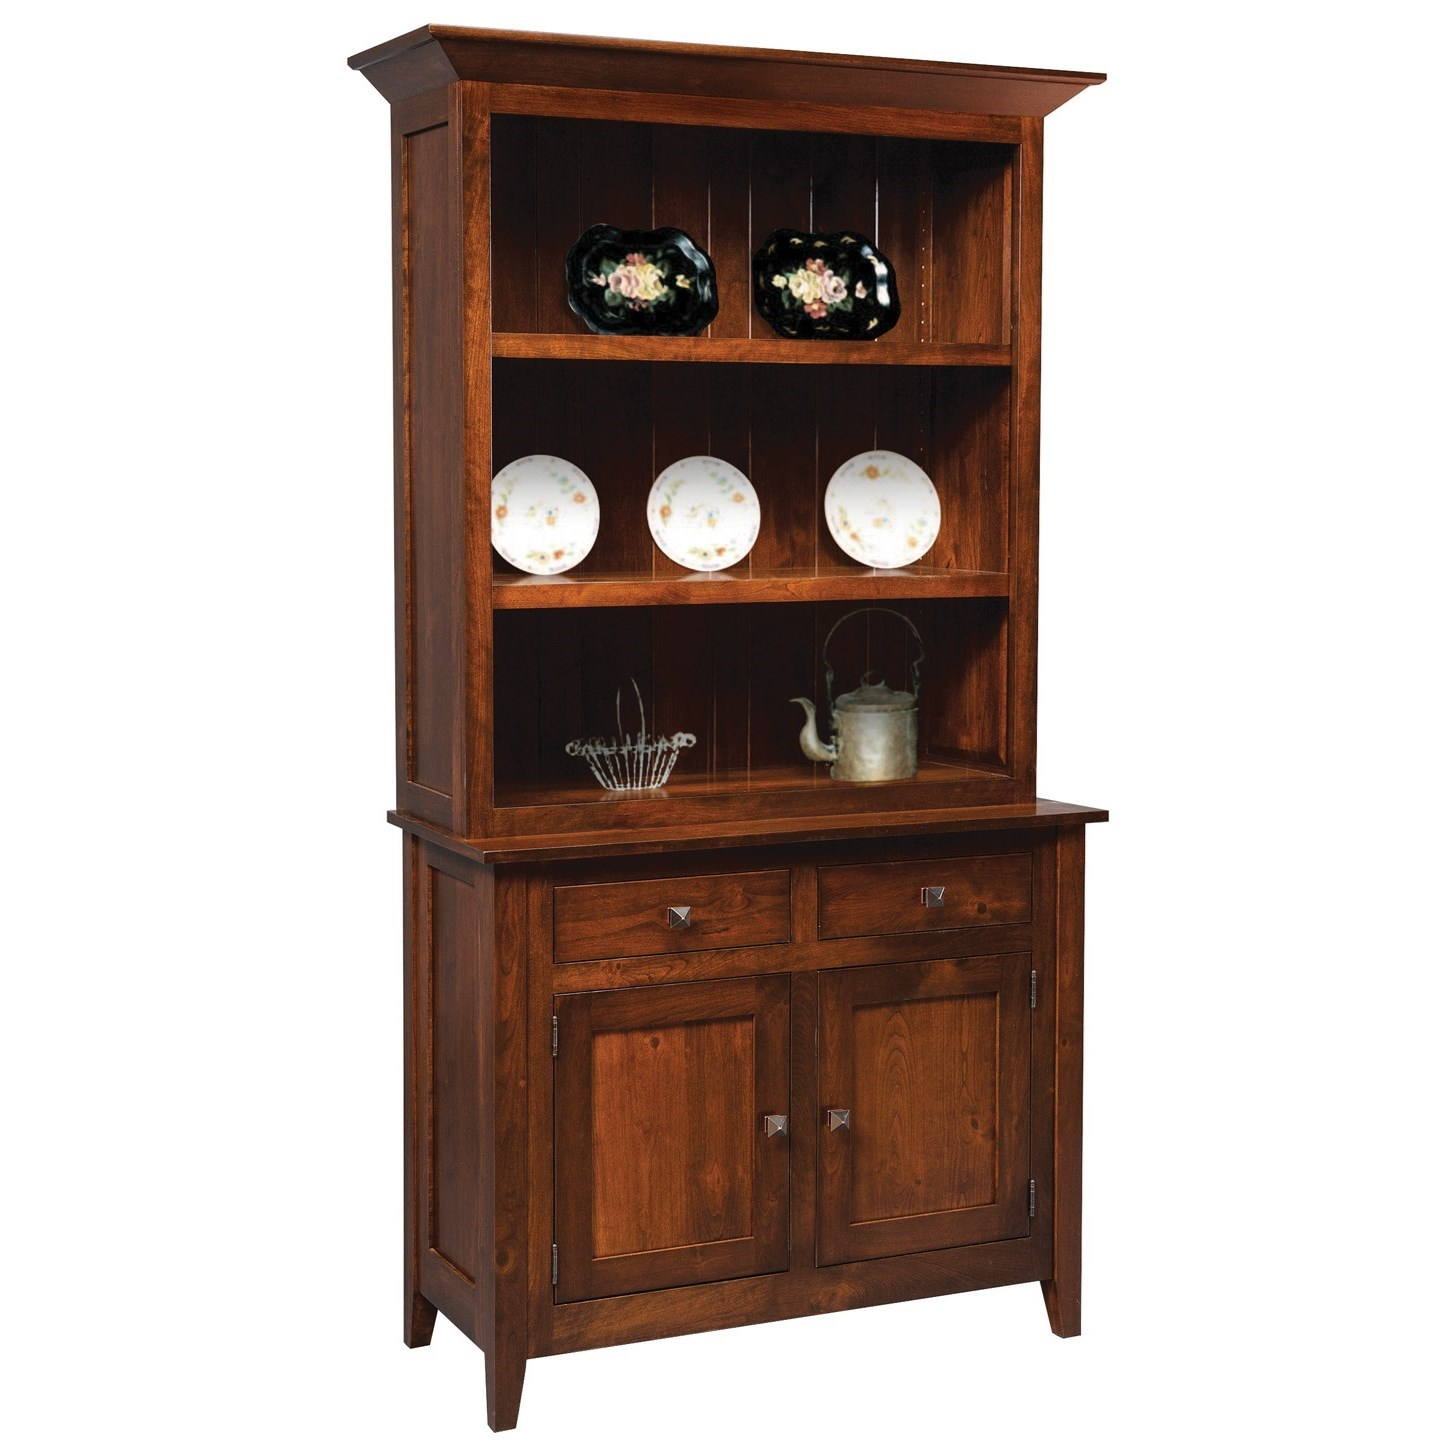 Settlers Ridge Buffet with Hutch by Meadow Lane Wood at Saugerties Furniture Mart